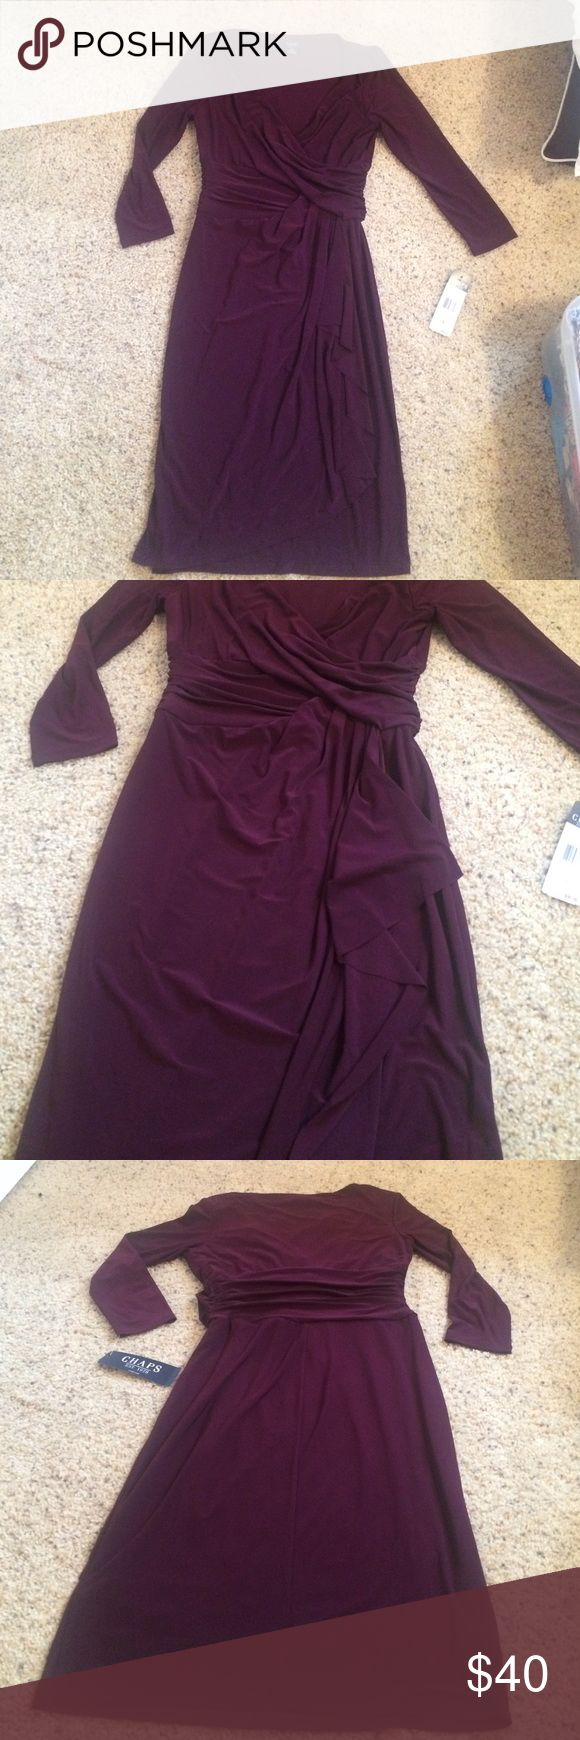 NWT Purple Long Sleeve dress Stretchy and flowy dress. Quarter length sleeves. V neck. Layered in the front Chaps Dresses Long Sleeve